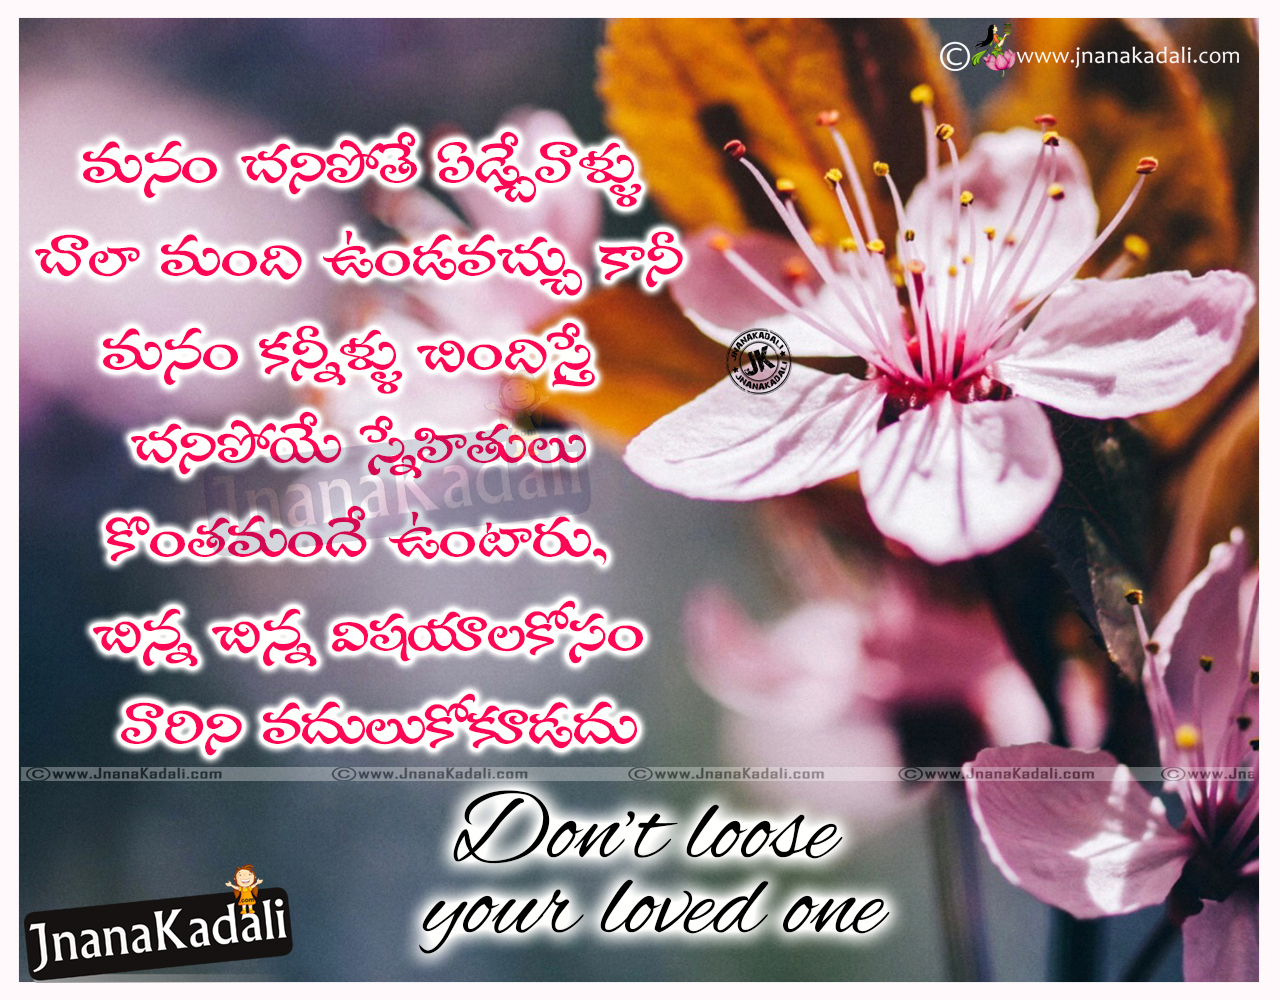 Friendship quotation for wallpaper flowers gardening flower and dont loose your loved one quotes in telugu with hd wallpapers izmirmasajfo